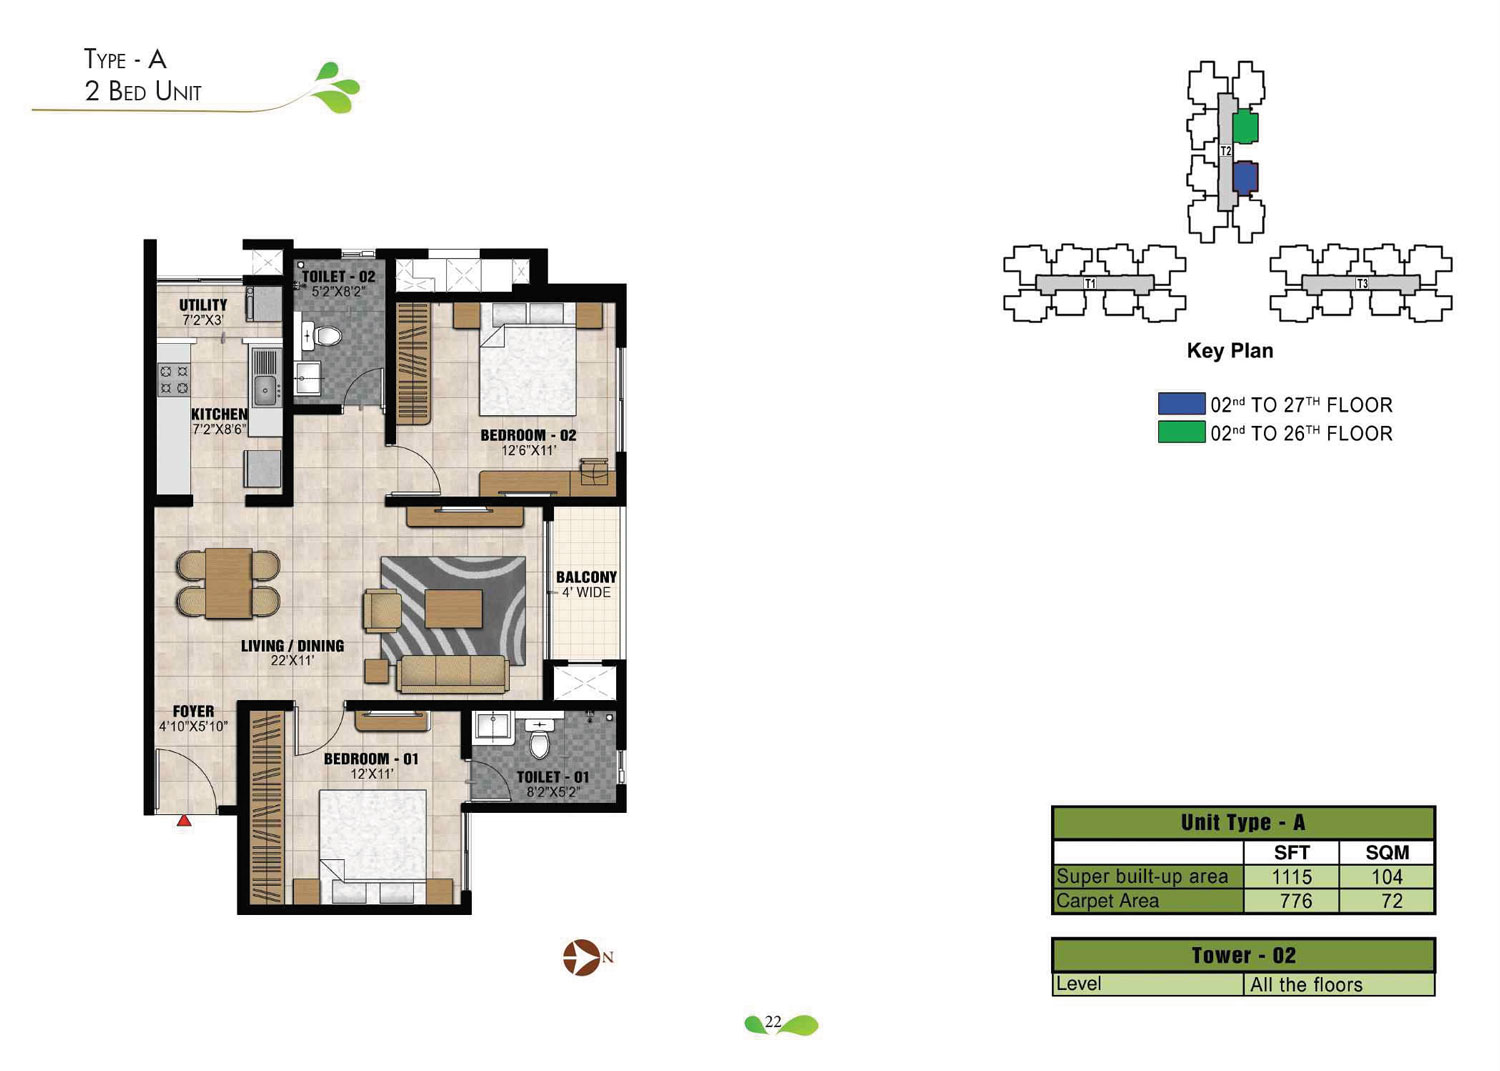 Type A - 1115 Sq Ft